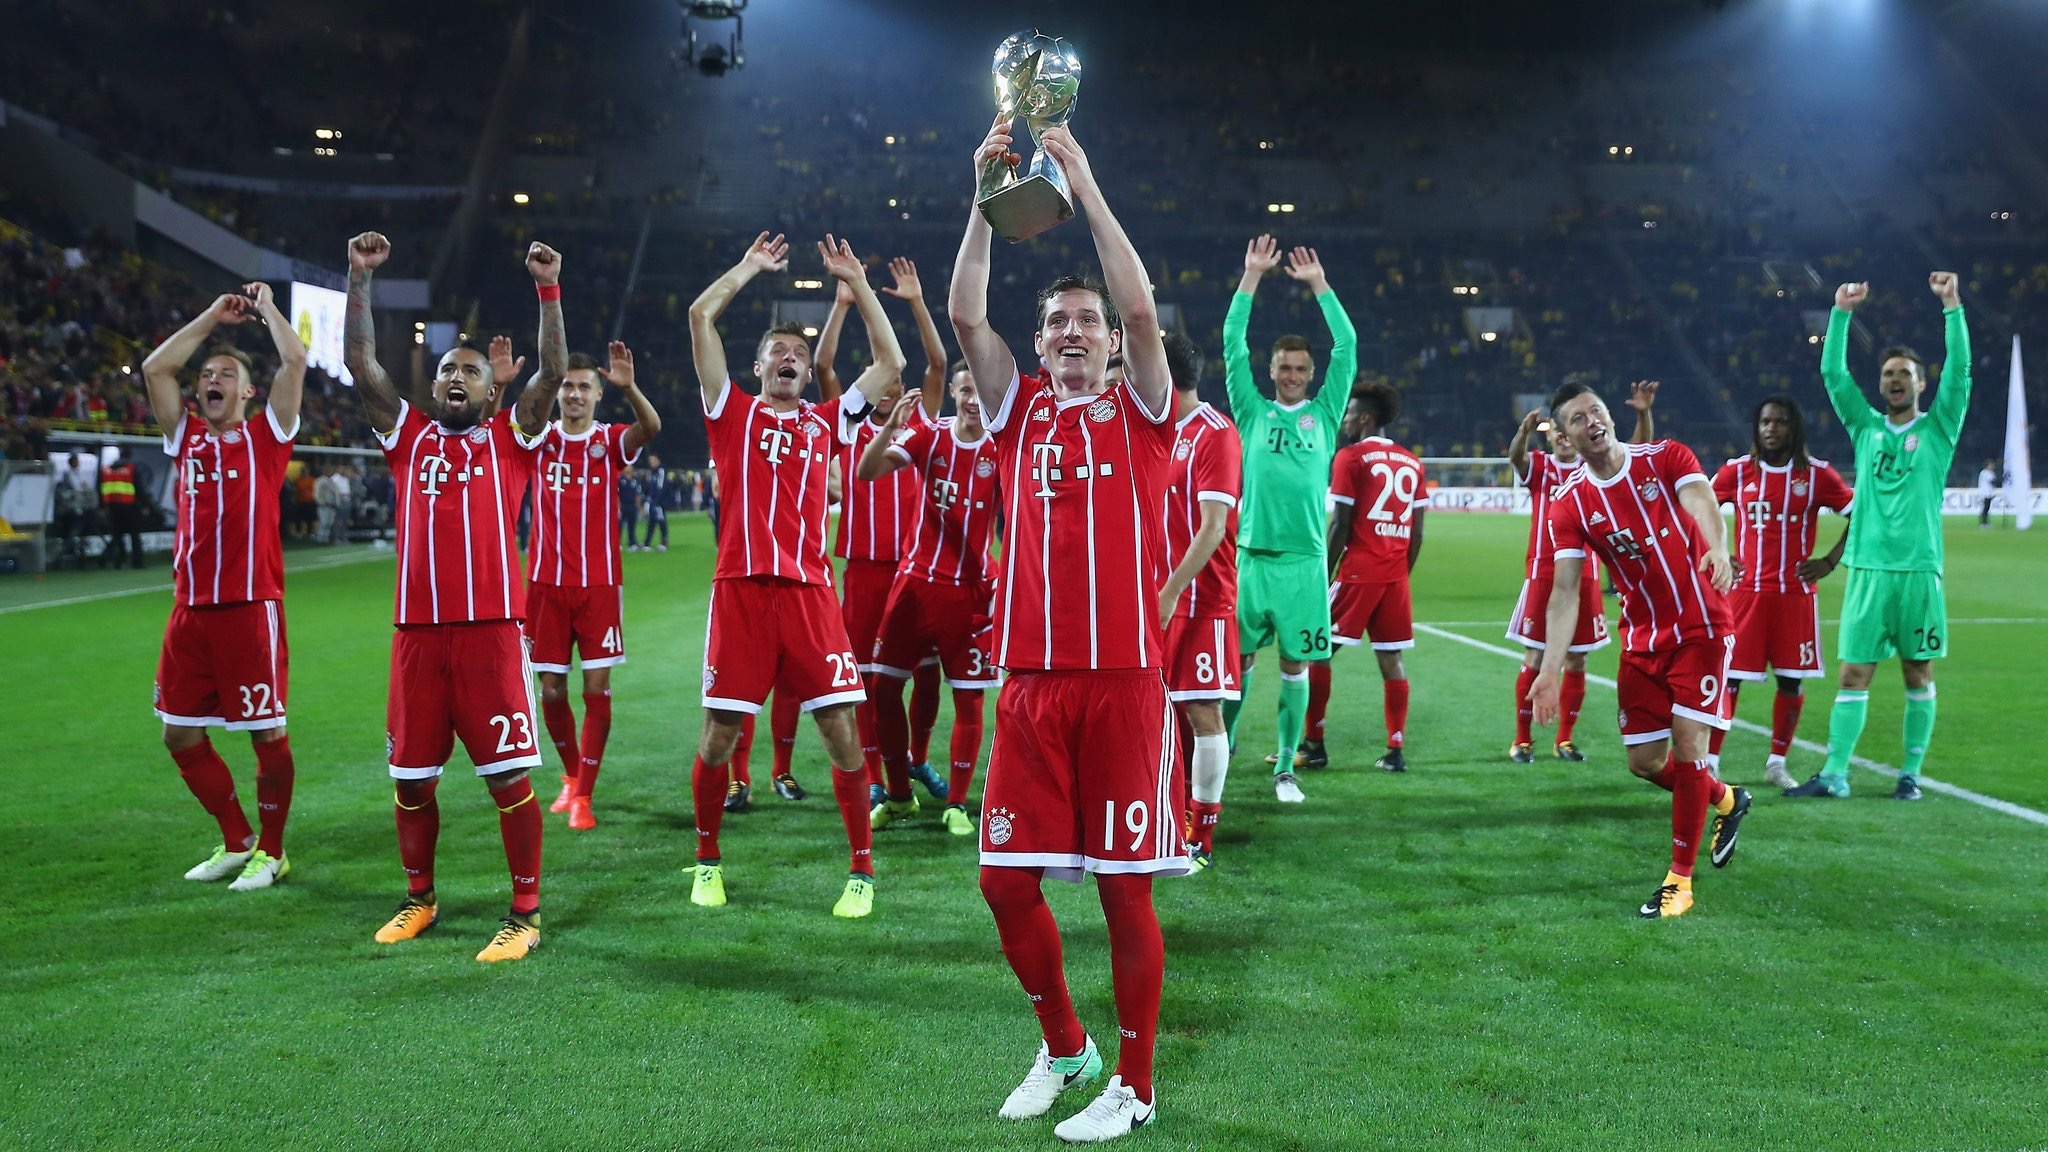 Bayern Edge Dortmund On penalties To Win 6th German Super Cup